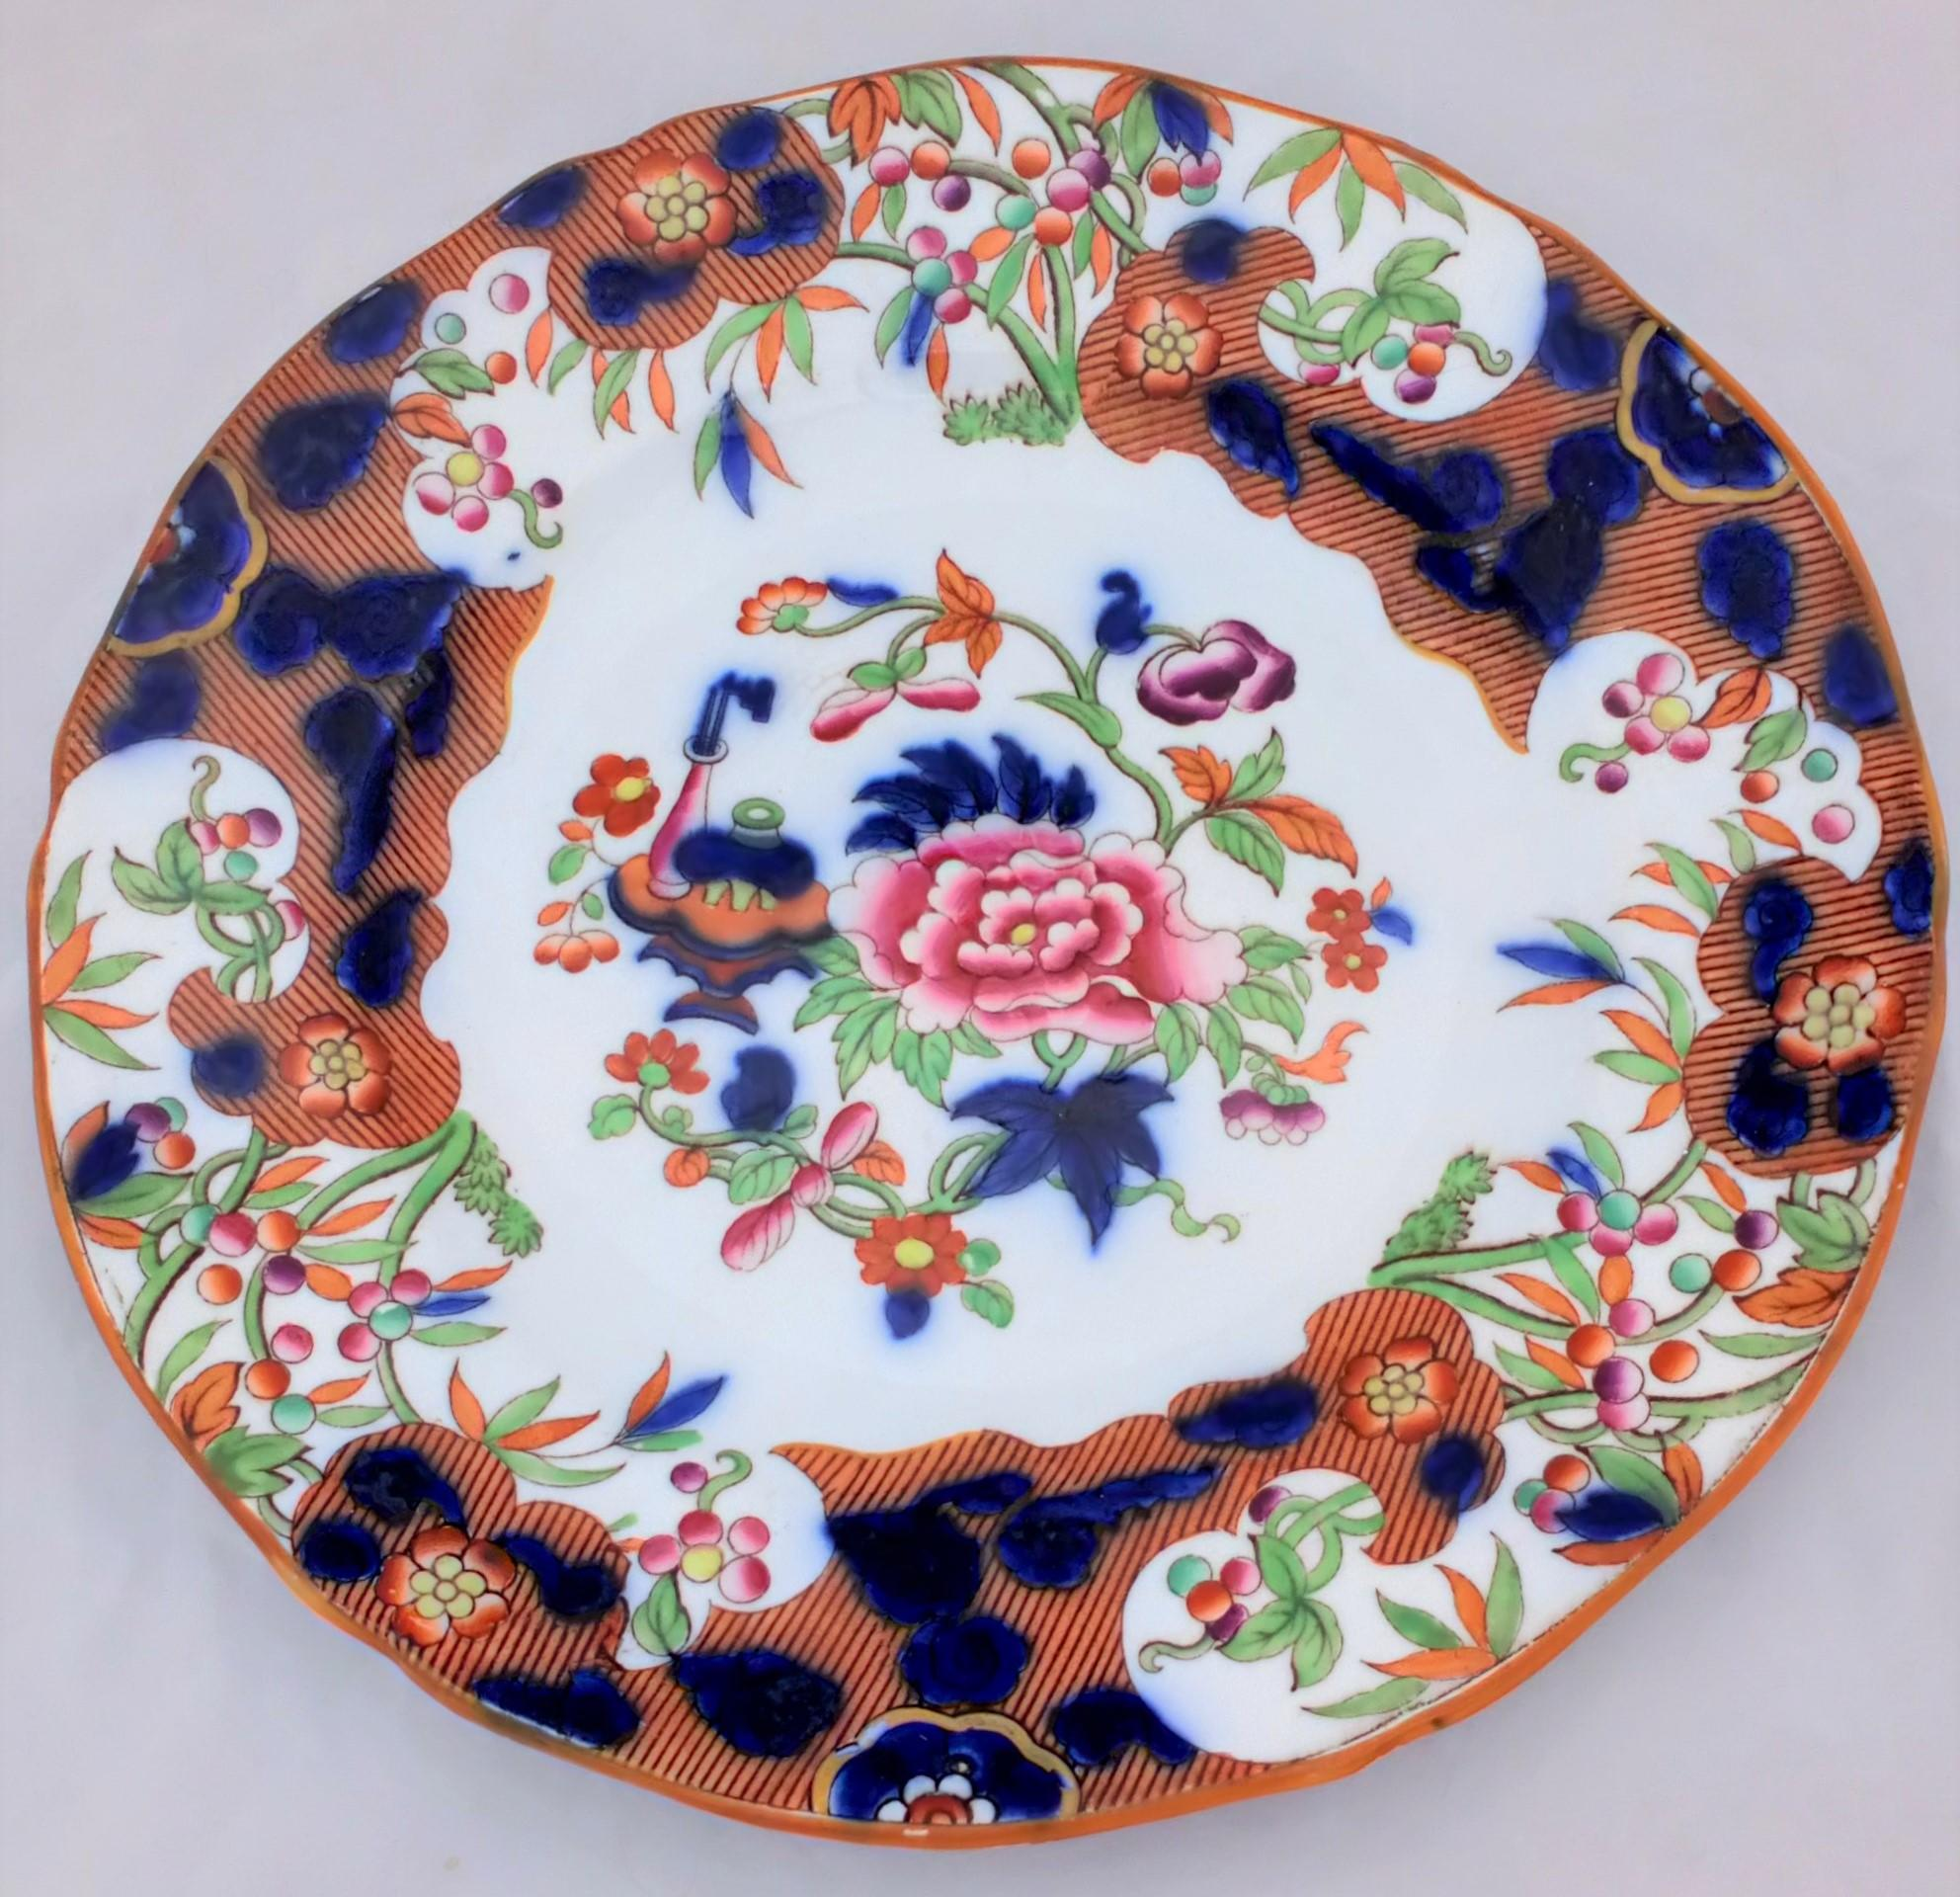 Antique Minton Best Body New Stone Plate Flow Blue D'Orsay Japan pattern circa 1850